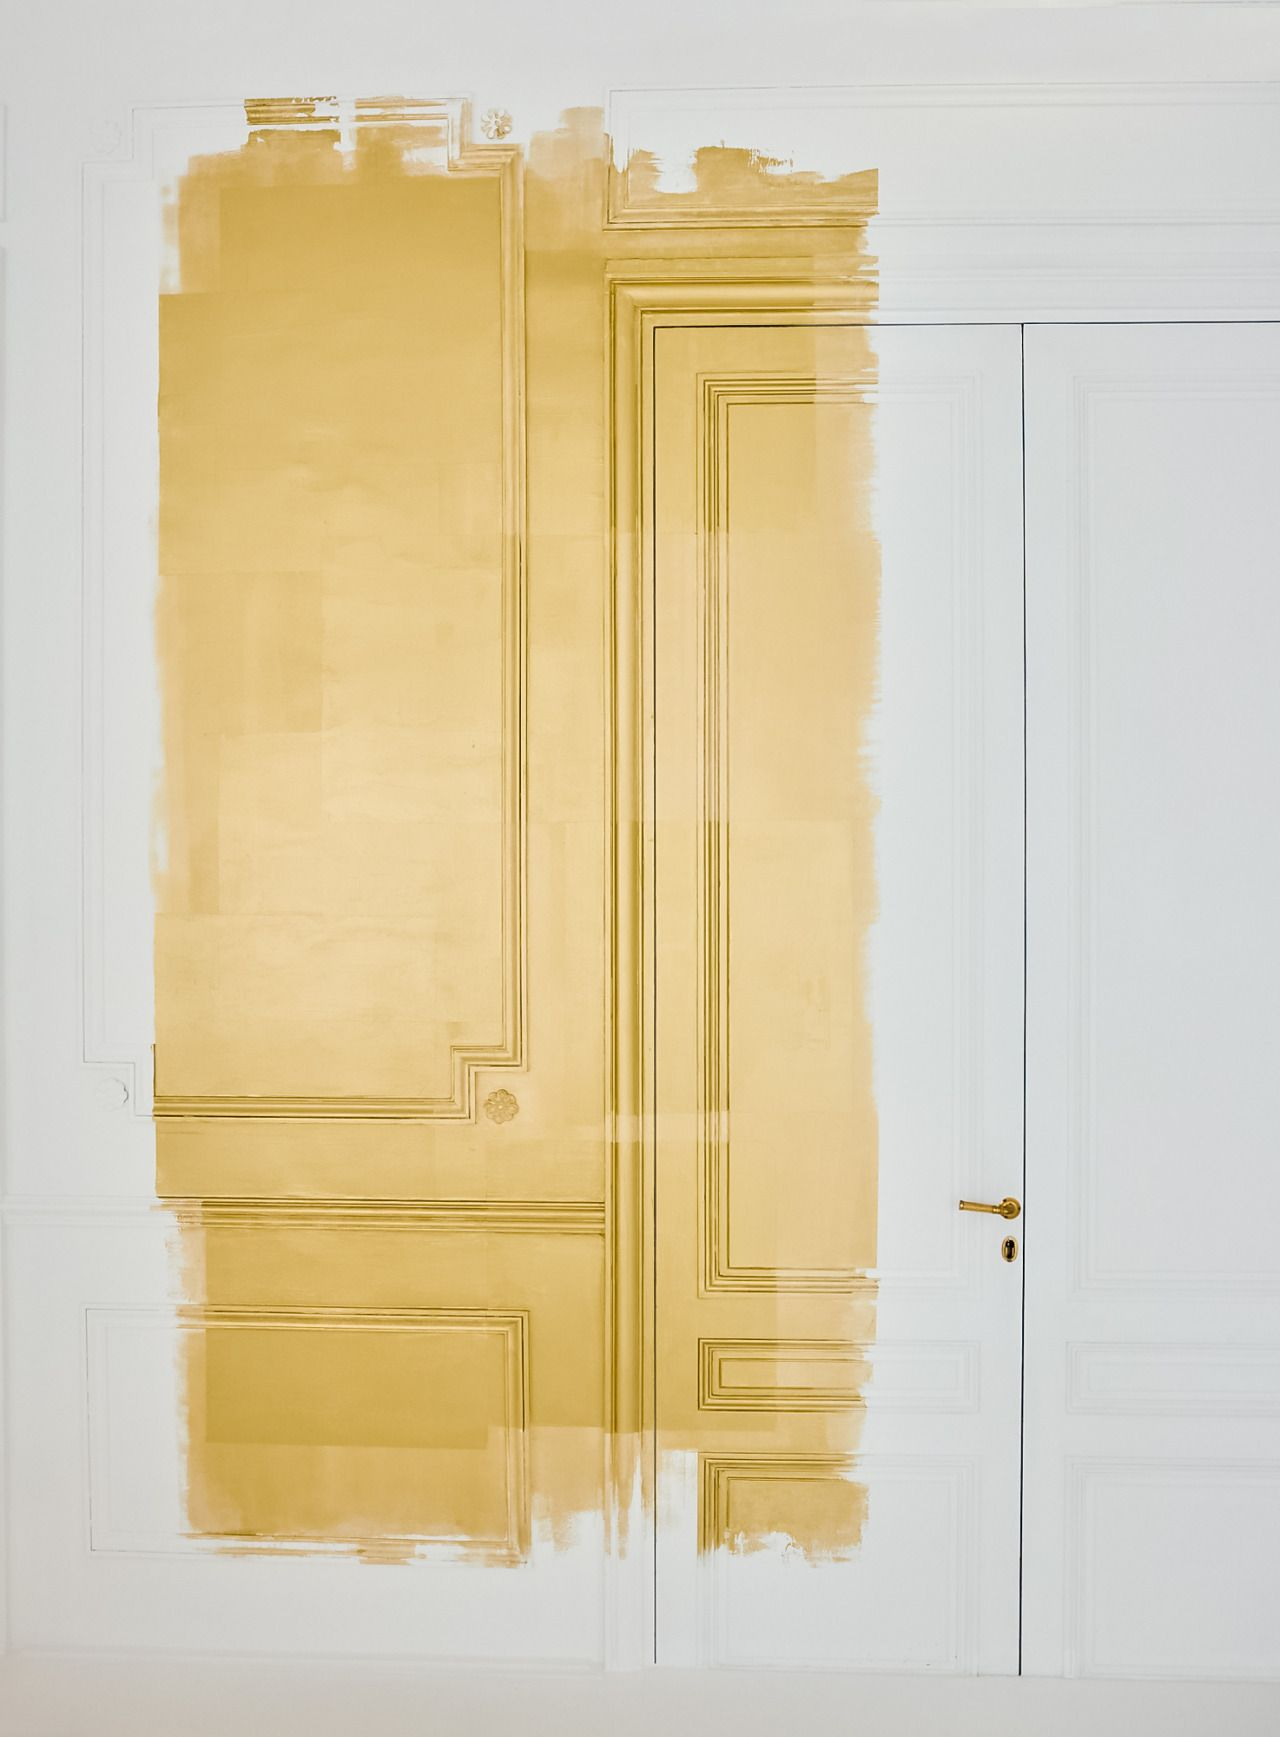 Wandfarbe Gold Farbe Wandgestaltung Gold Metallic Paint On The Wall As In Ateliers Christian Dior Moods